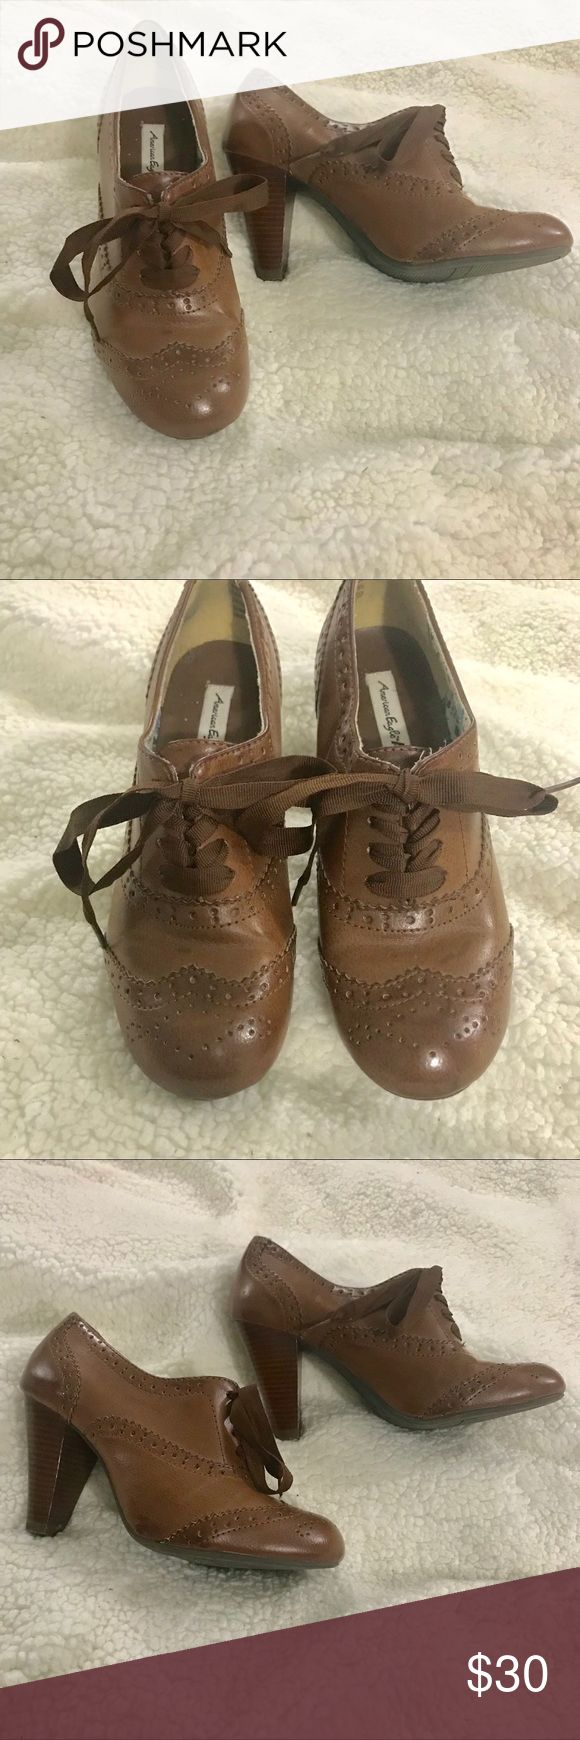 💥SALE💥Heeled oxfords Worn once for a couple hours. Brown Oxford shoes with a midi heel and a ribbon to tie it all off. Perfect for your pinup look, office outfit, or everyday. American Eagle Outfitters Shoes Ankle Boots & Booties